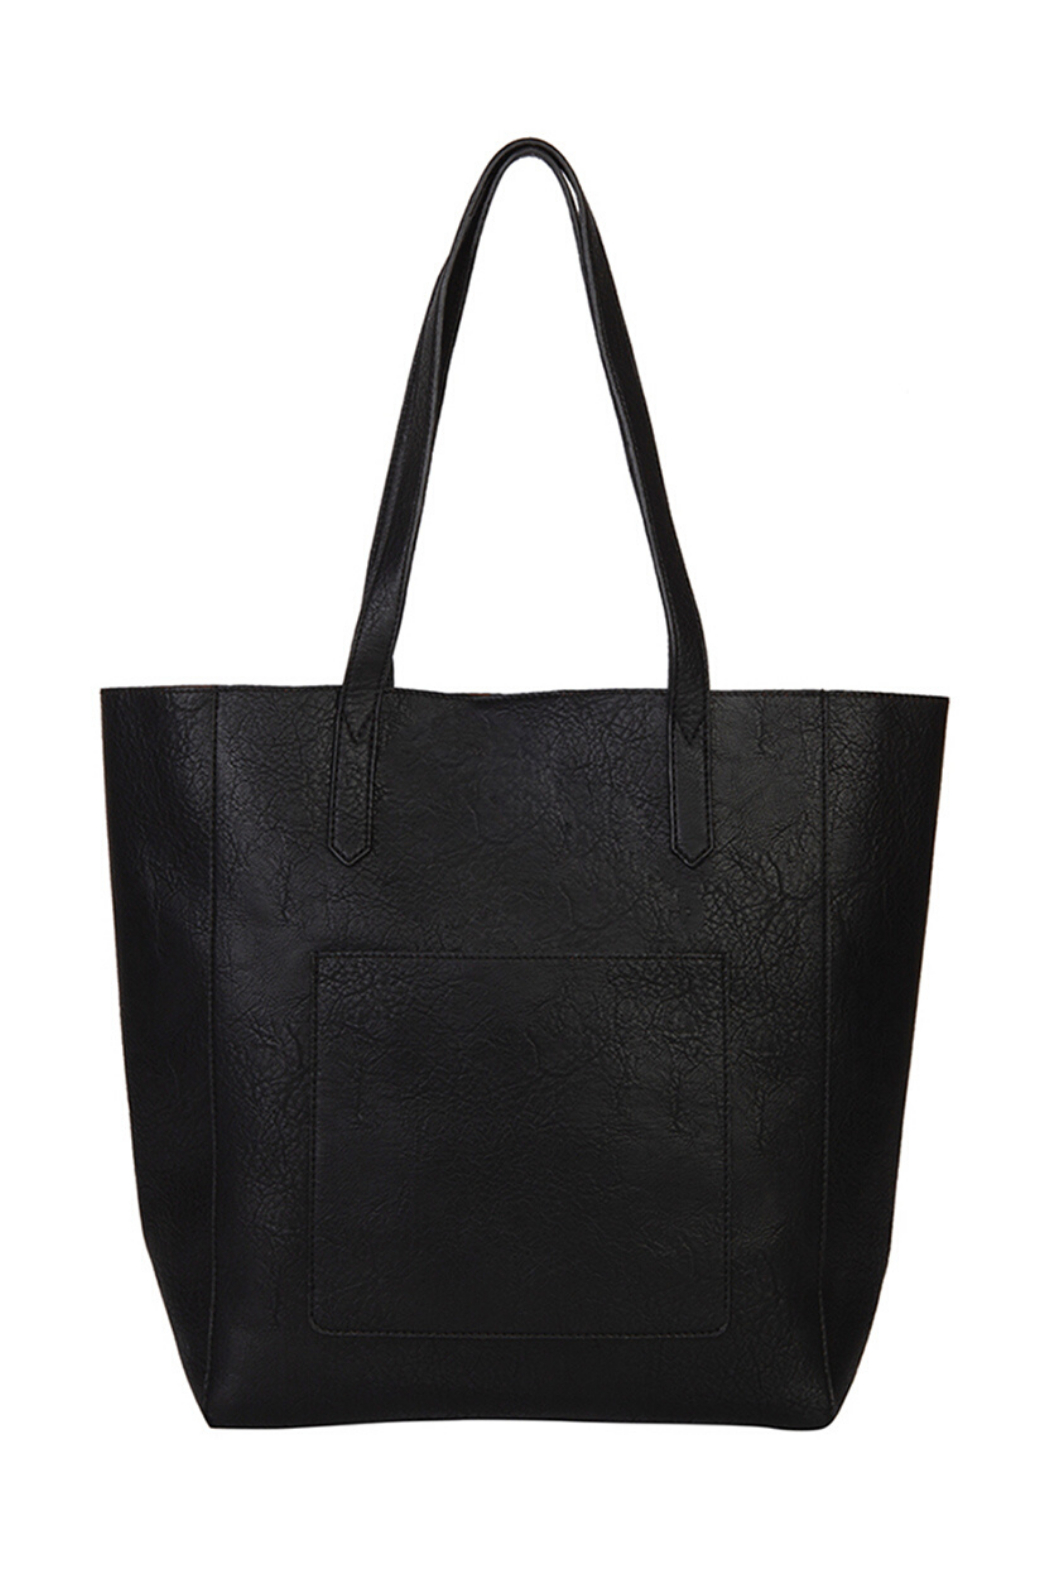 Mona B Mallory 3 Pc Vegan Leather Tote - Front Full Image